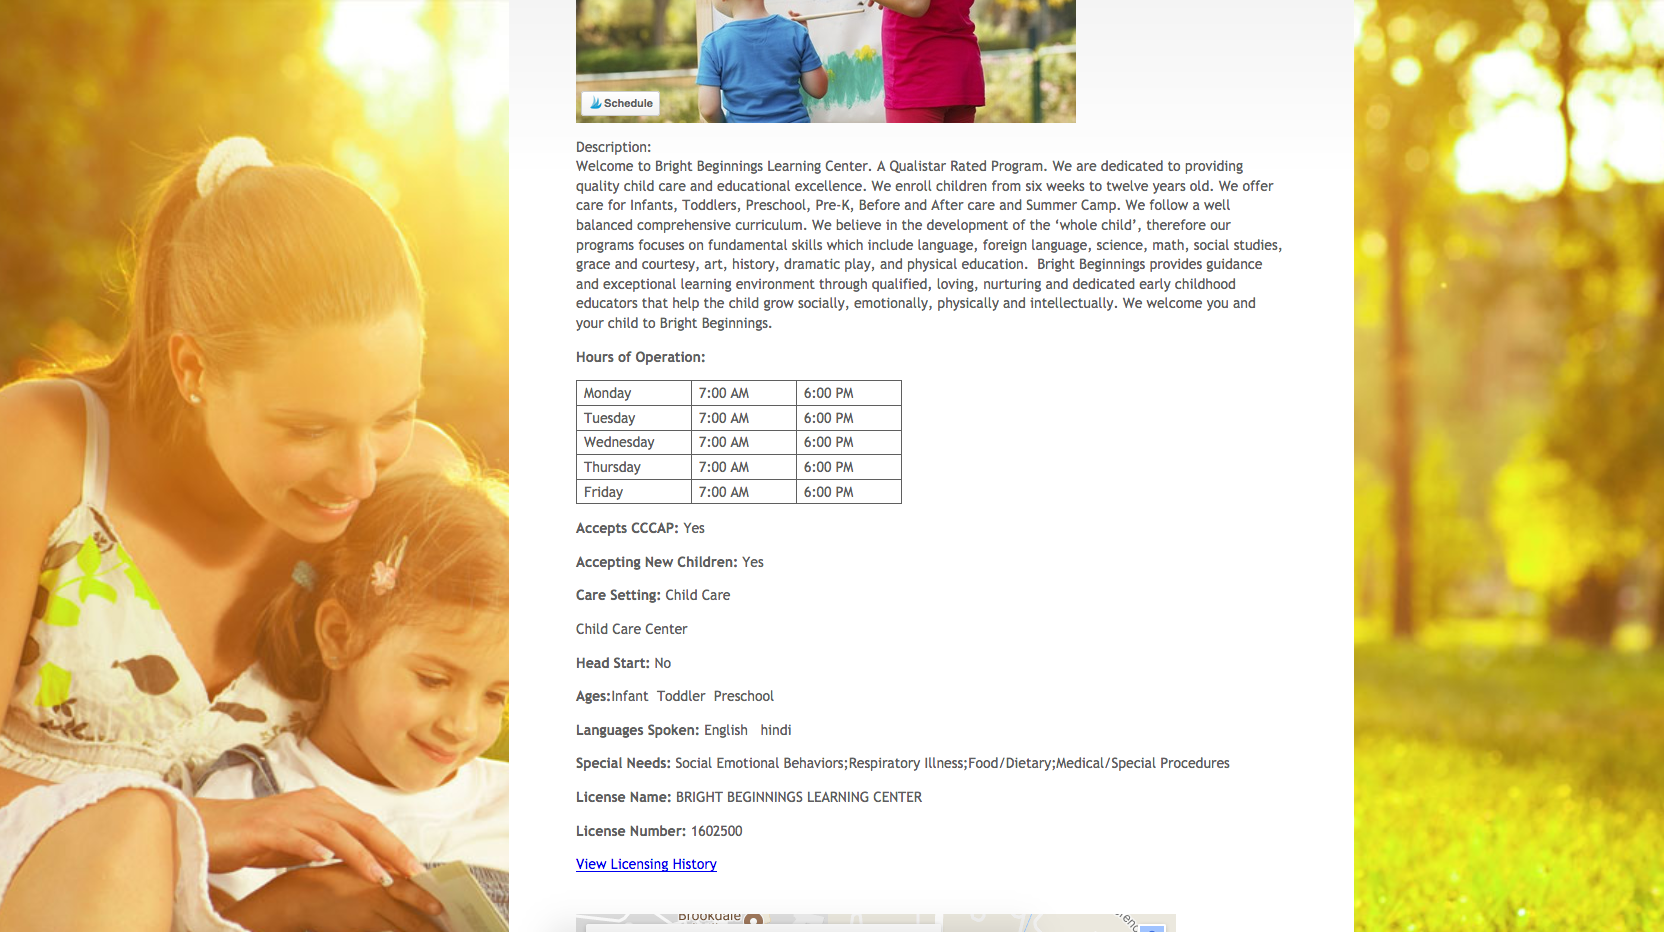 Easily search for daycare or preschool options through Colorado government's Colorado Shines online database!